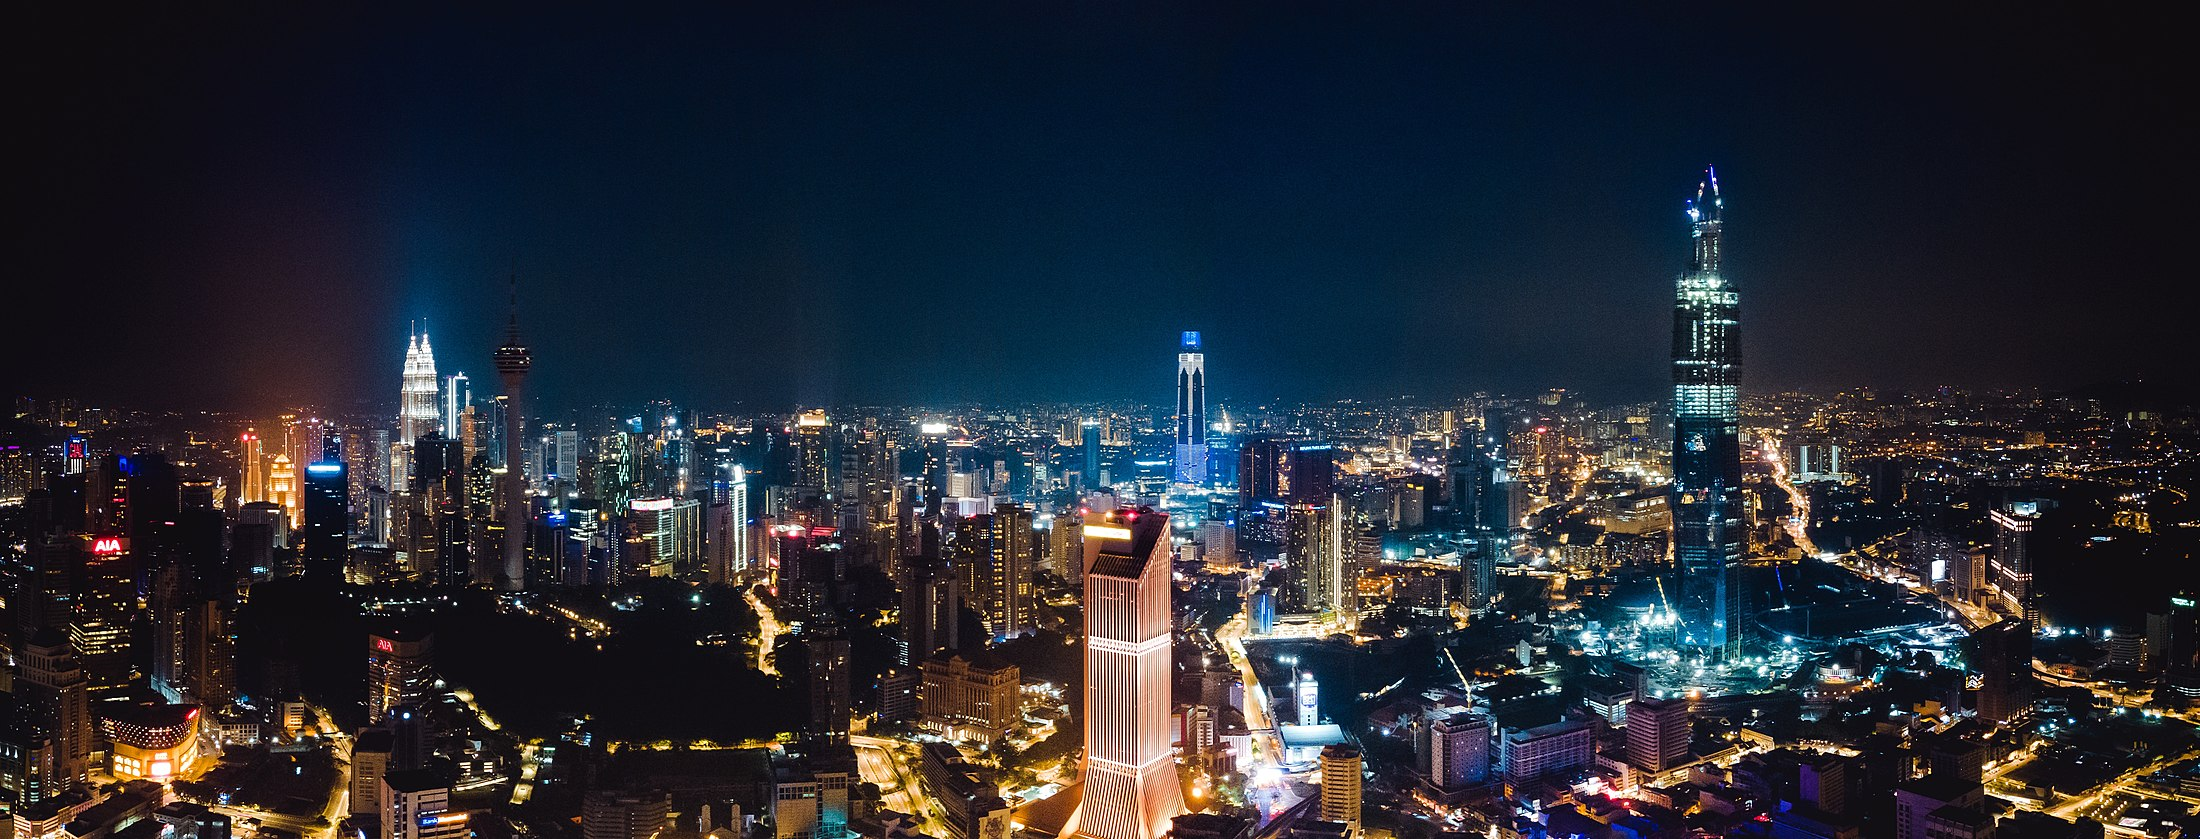 Panorama view of Kuala Lumpur at night time Yong-chuan-tan-vpbsTcS-YtM-unsplash.jpg